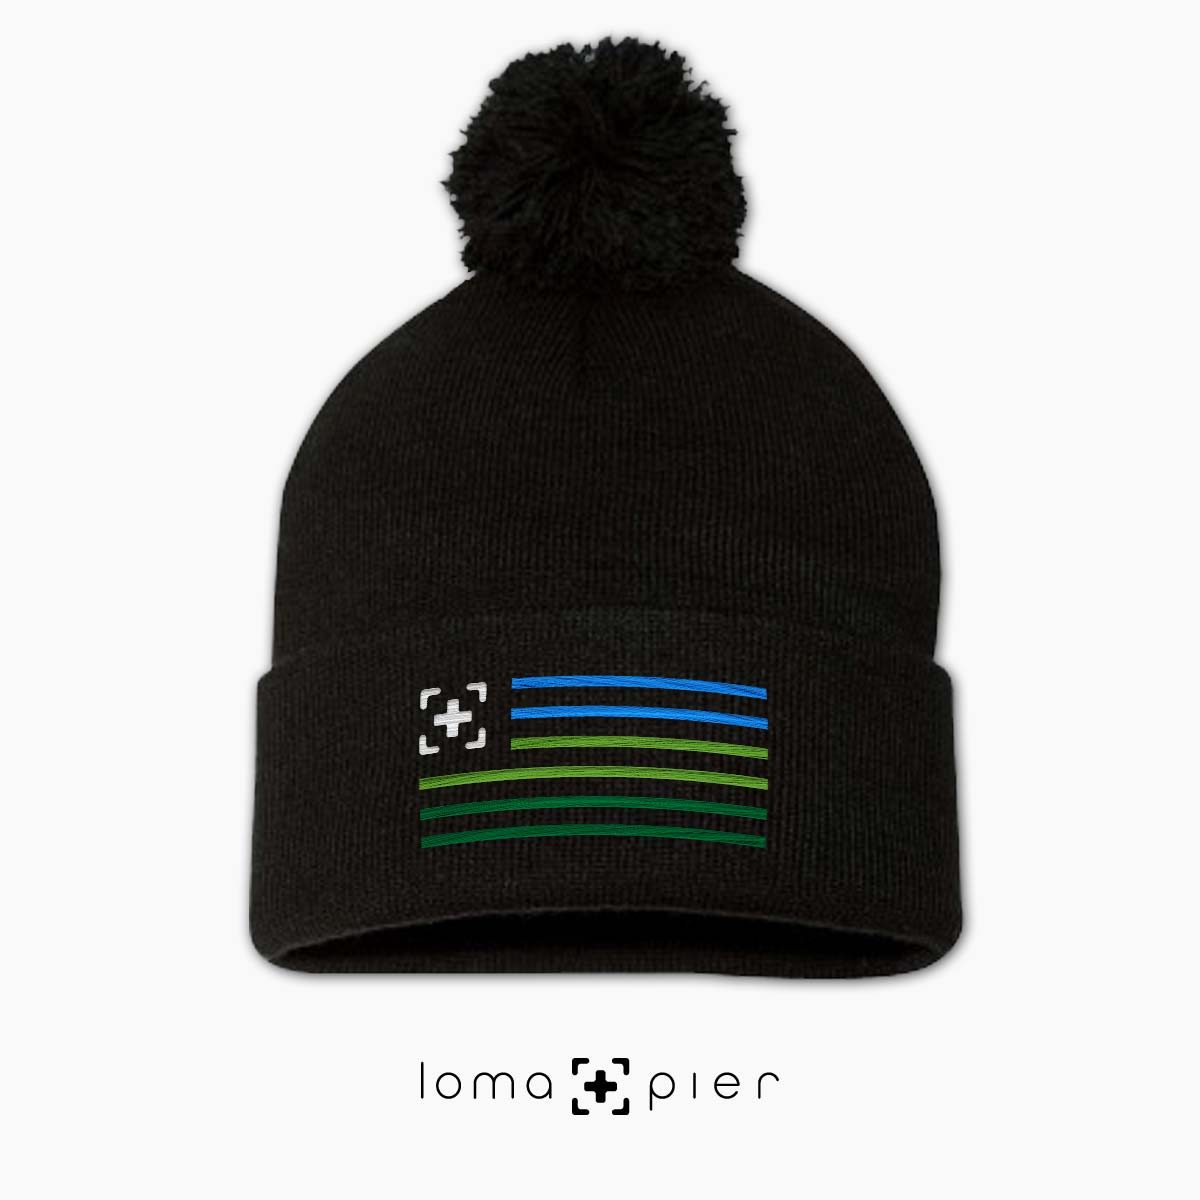 loma+stripes icon embroidered on a black pom pom beanie by loma+pier beanie store